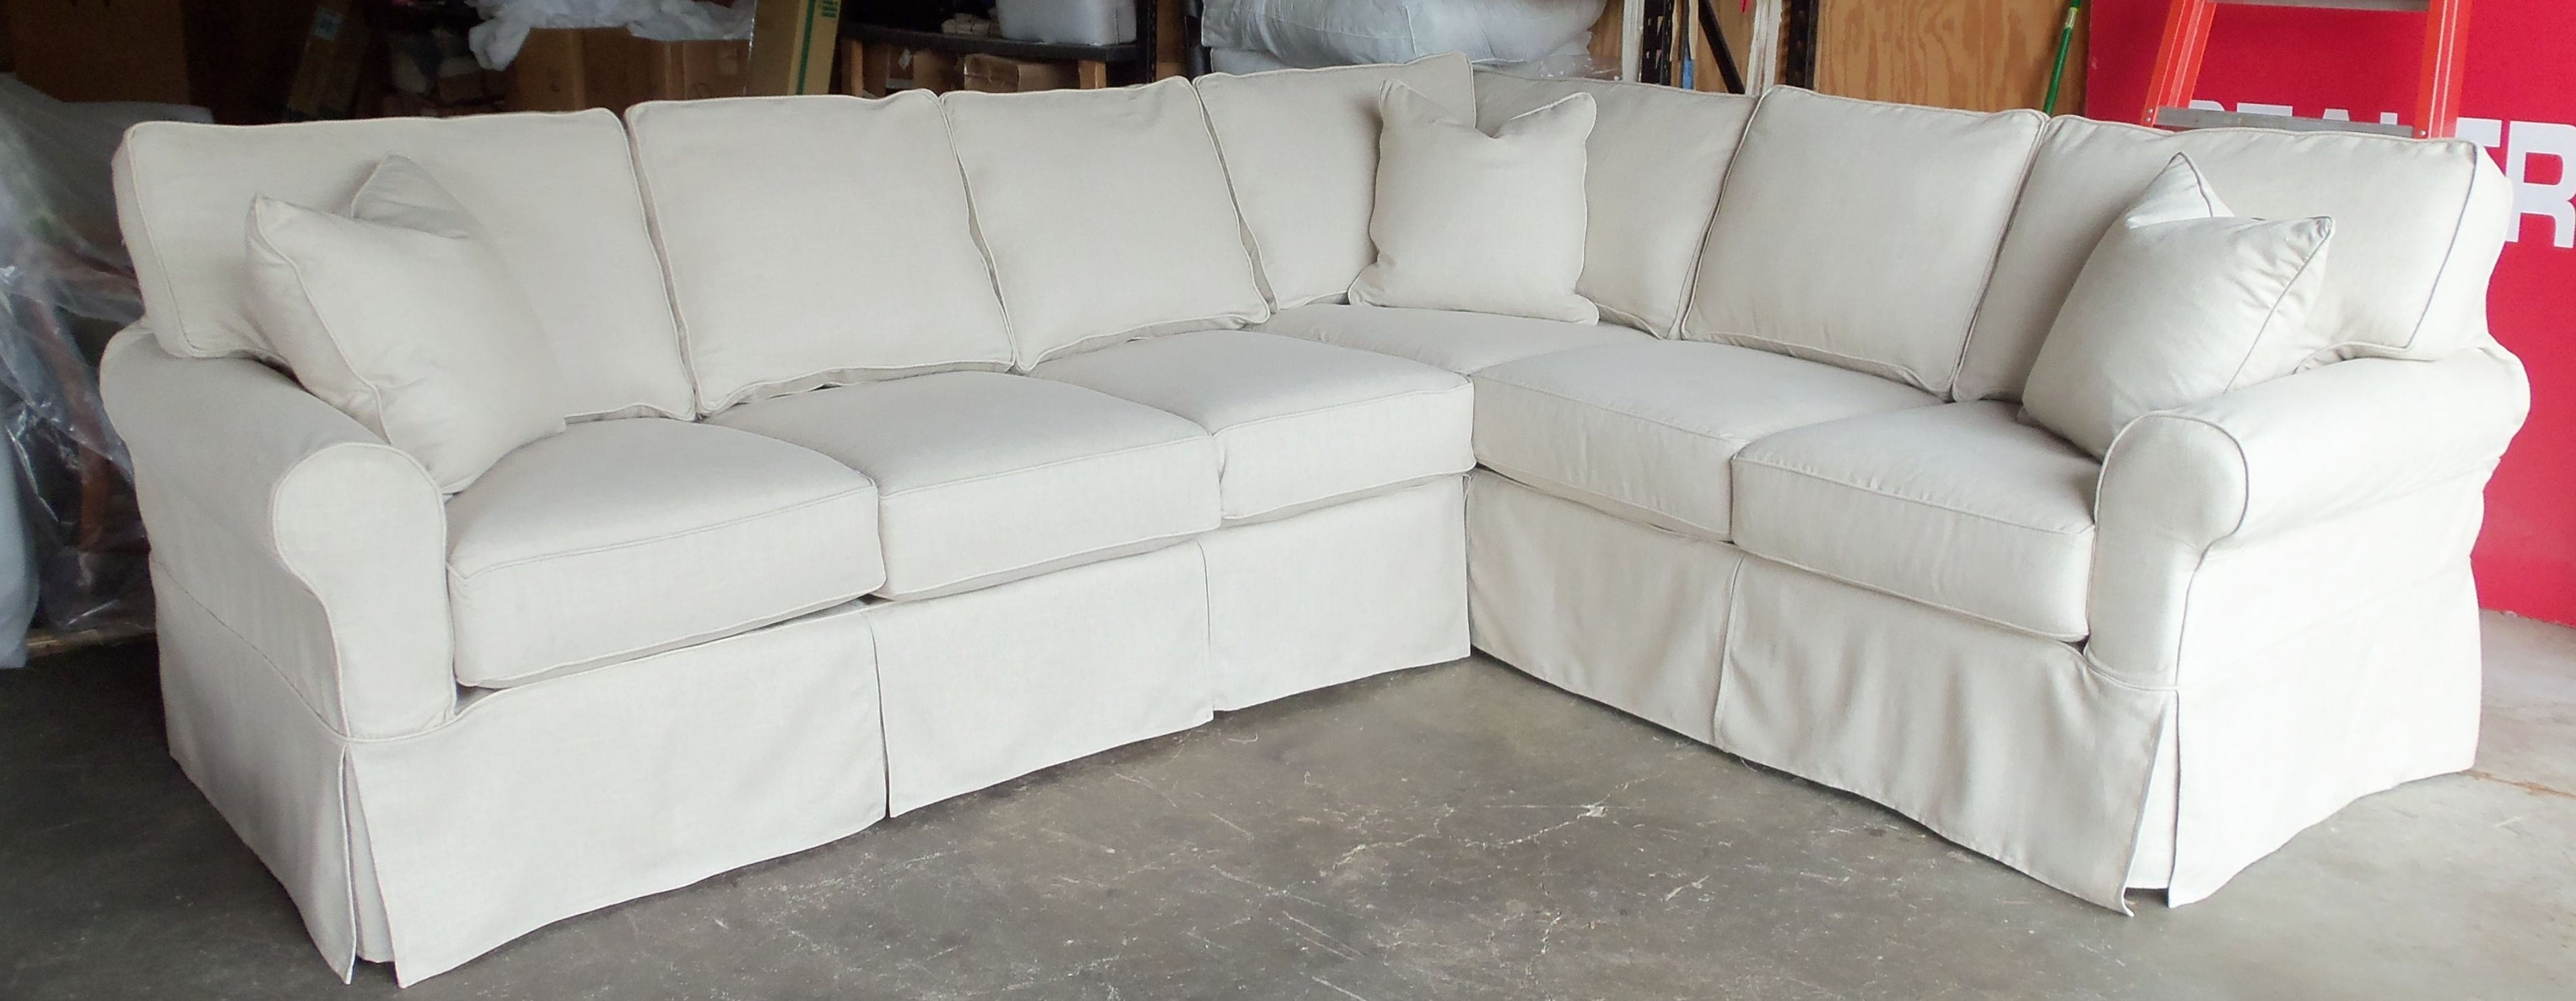 Current Cheap Sectional Sofas In Birmingham Al (View 2 of 20)